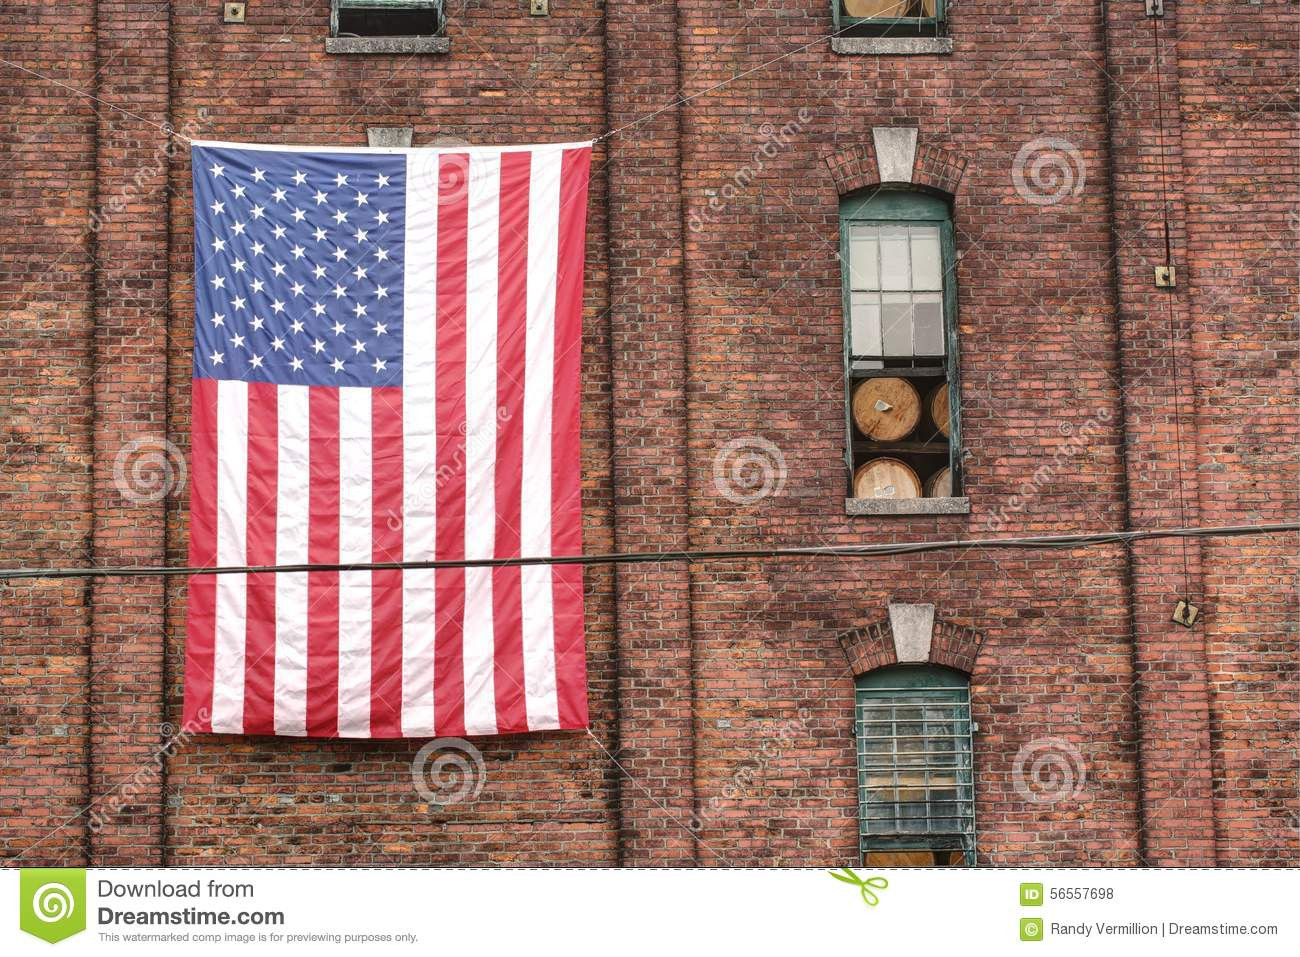 Hang Flag On Wall american flag on brick wall stock photo - image: 56557698